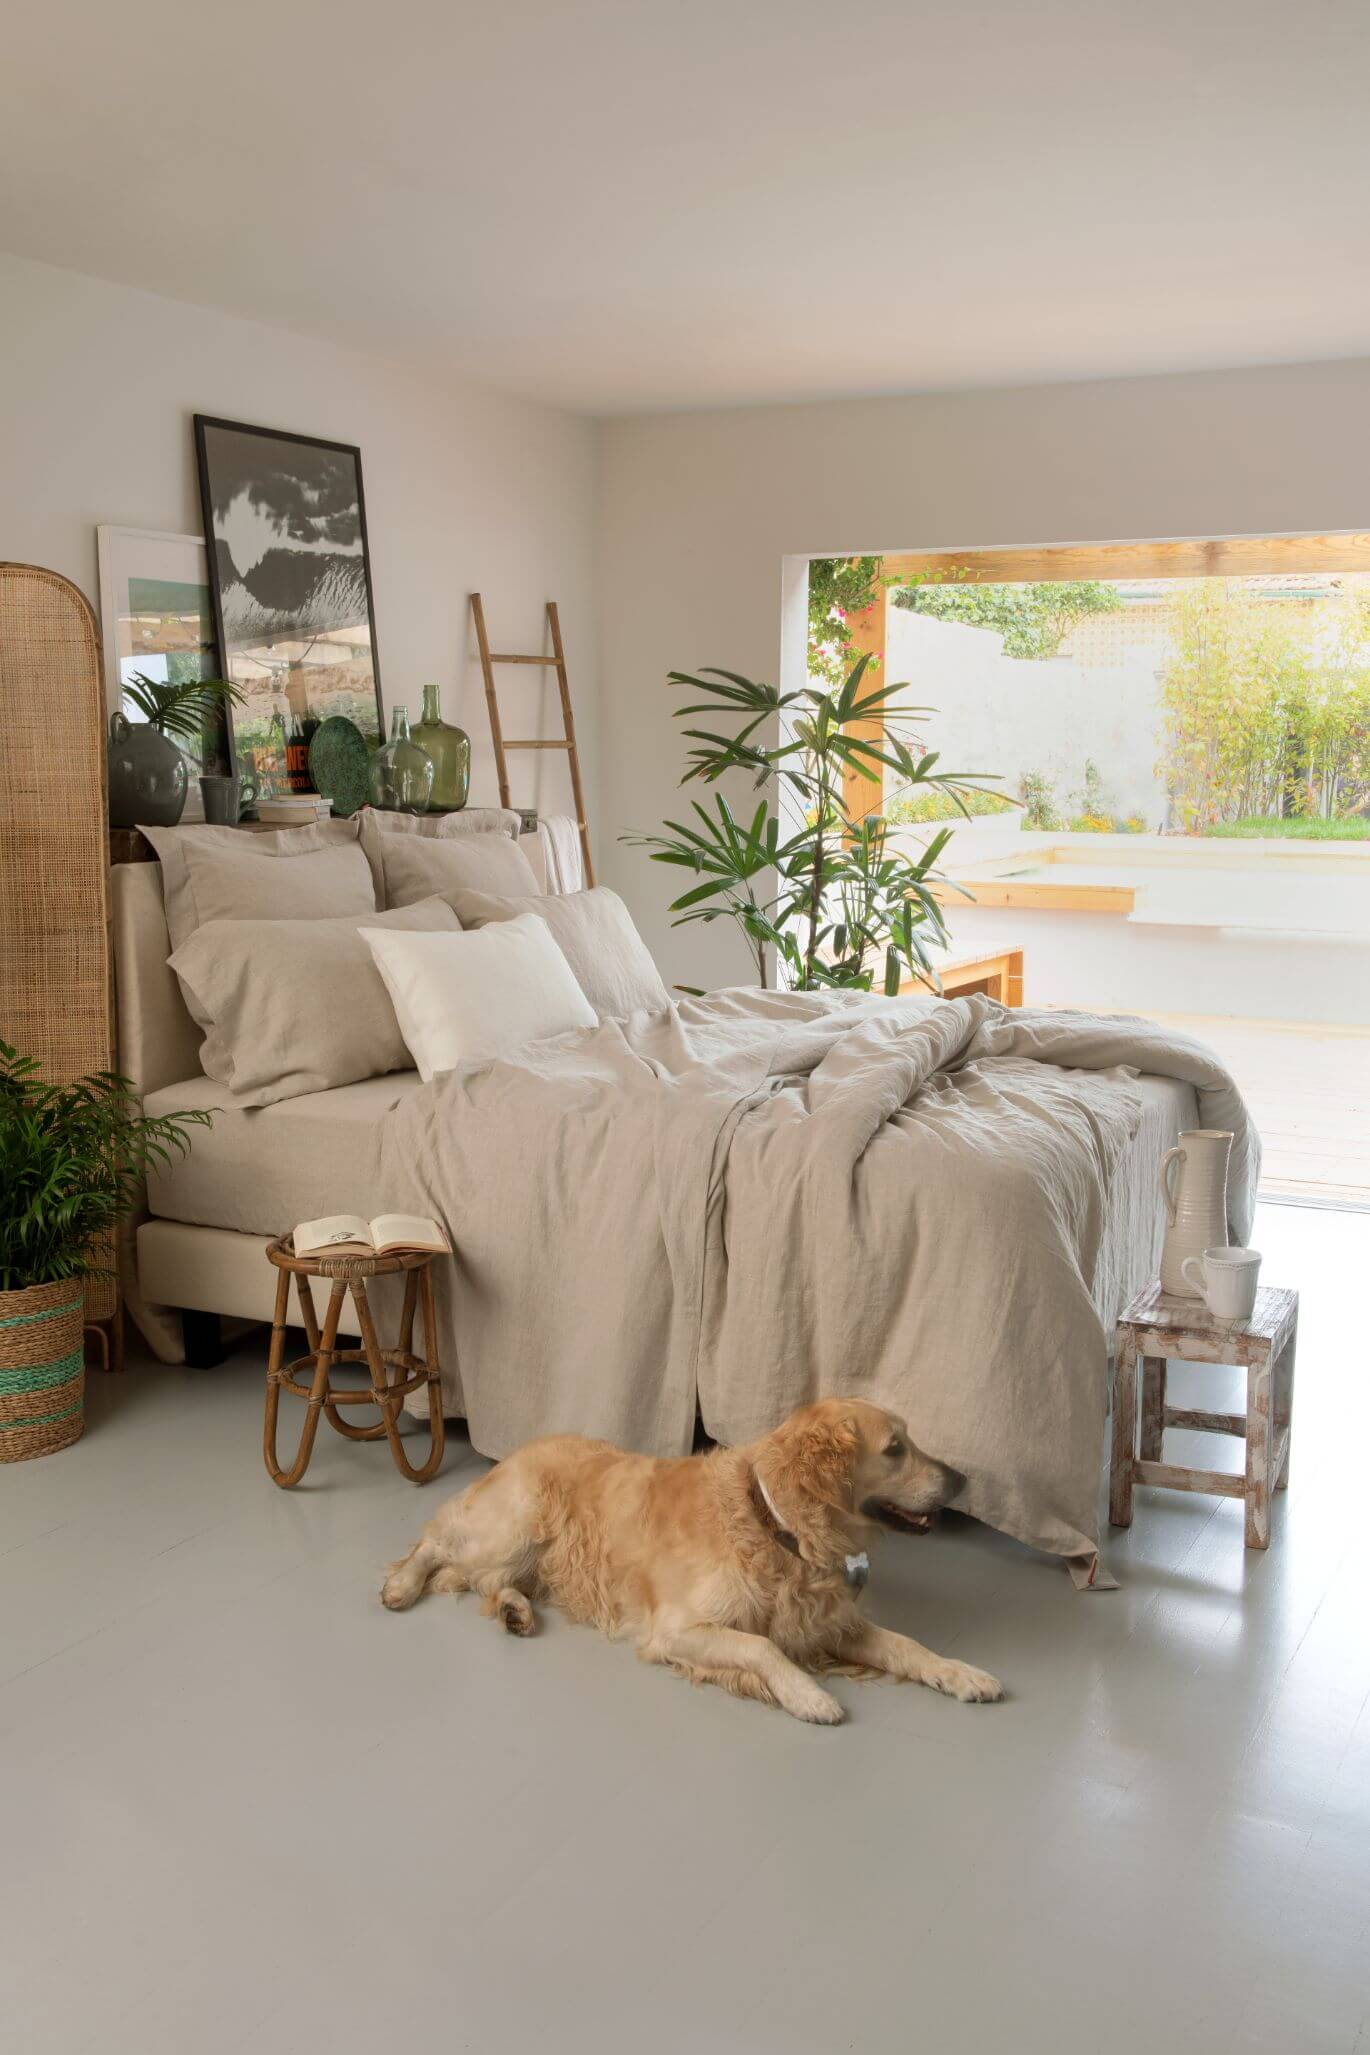 Marialma's Natural Hemp 100% bed sheets in a sustainable bedroom with golden retriever